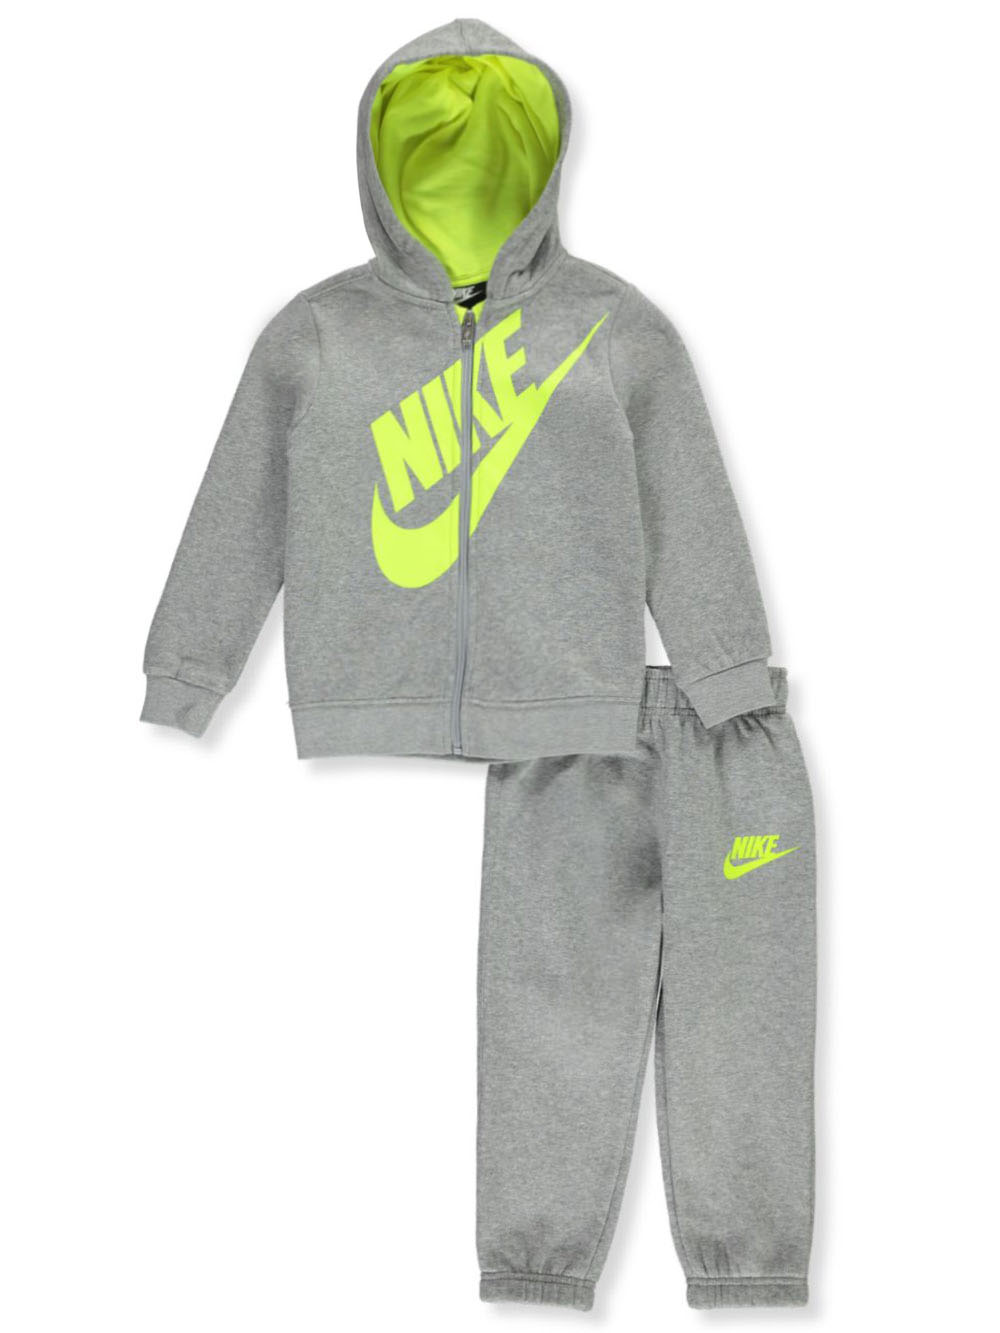 Fleece 2-Piece Sweatsuit Pants Set Outfit